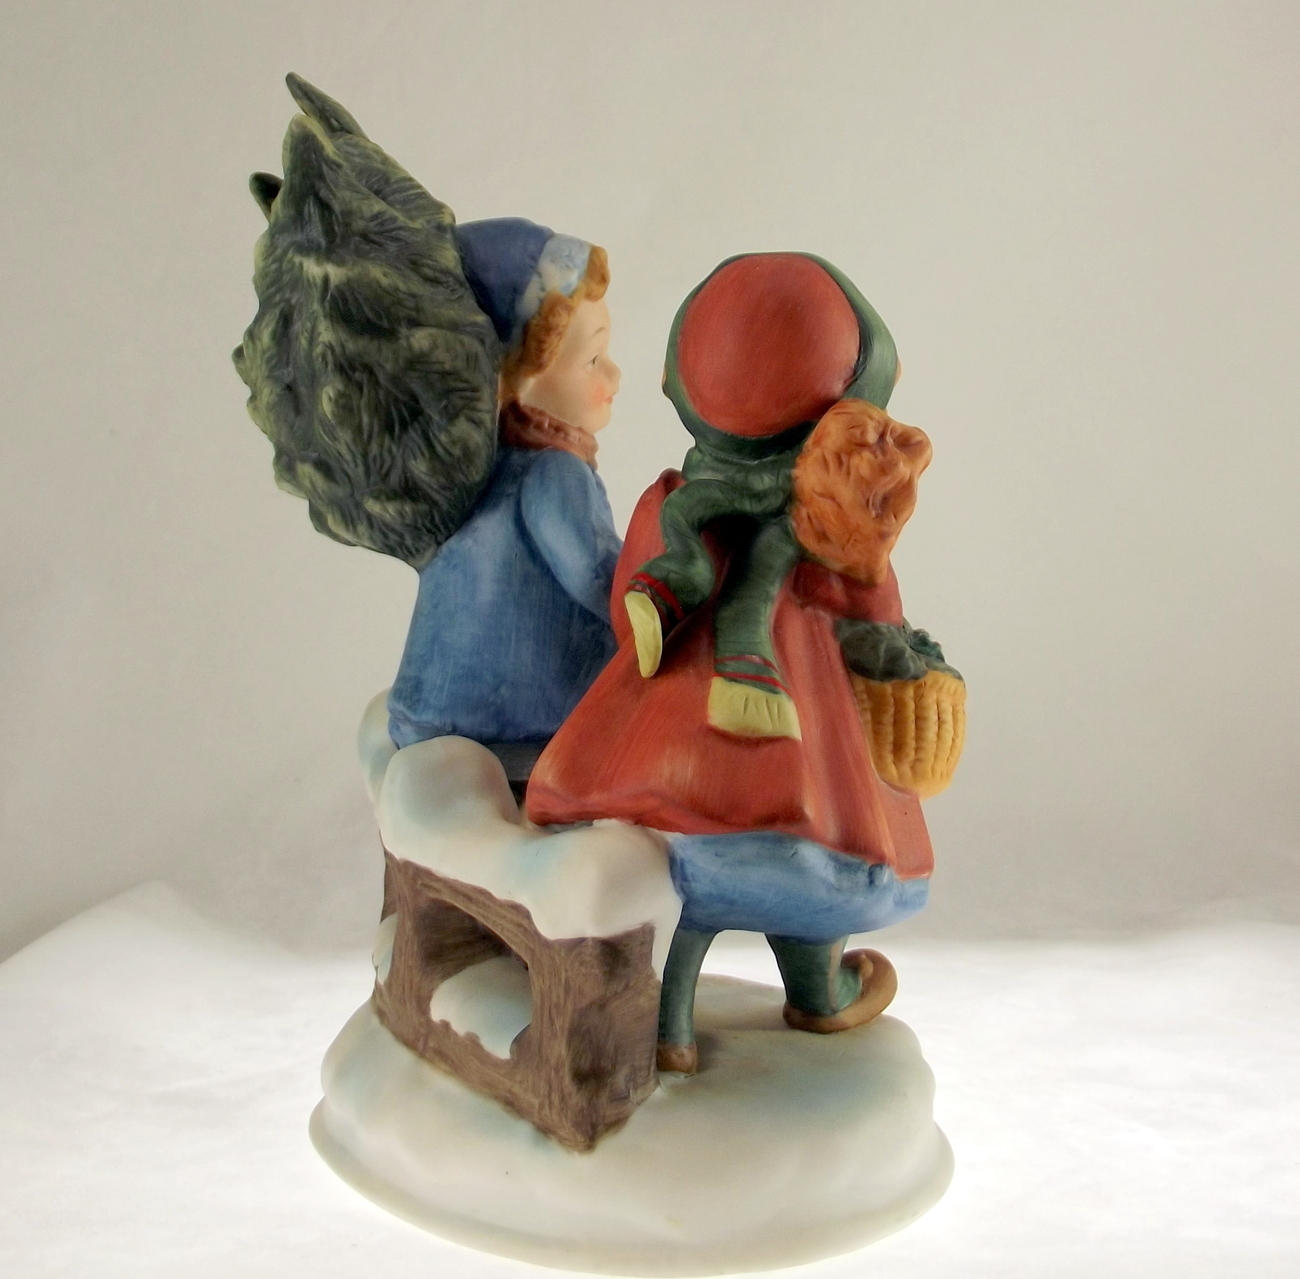 Avon porcelain figurine Christmas Memories series 1981 First Edition